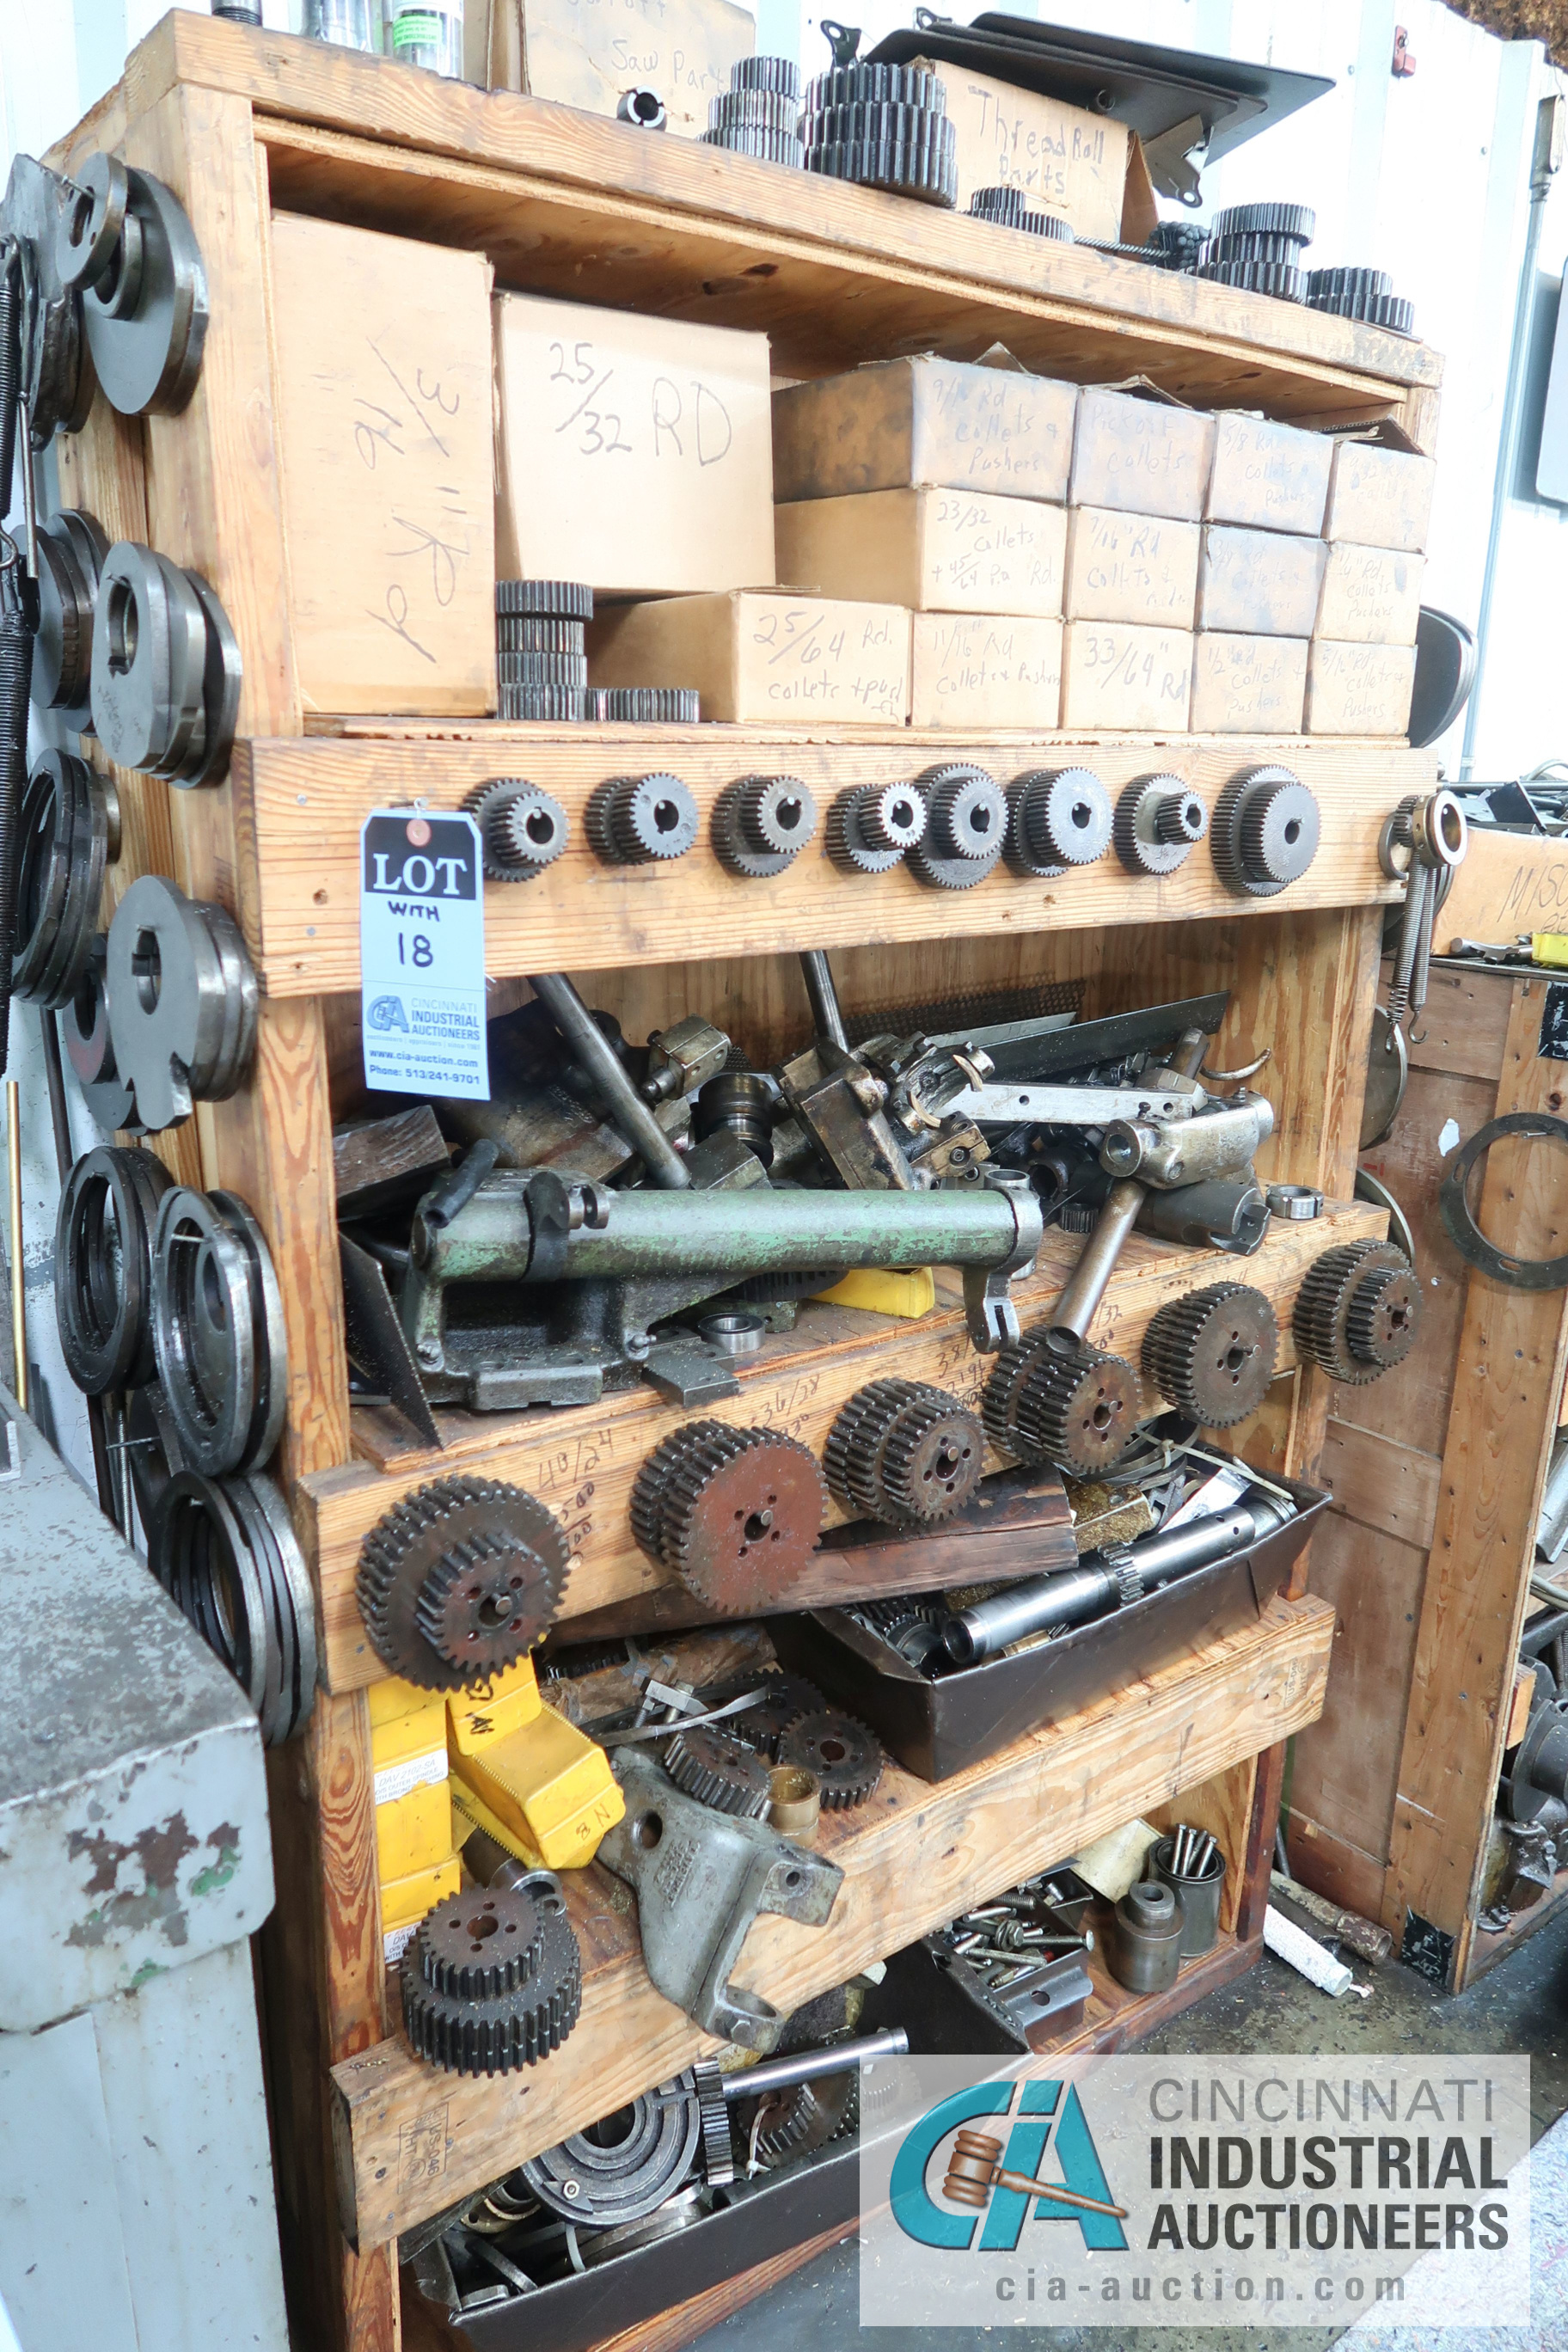 Lot 18 - (LOT) LARGE ASSORTMENT MISCELLANEOUS DAVENPORT TOOLING, ATTACHMENTS, GEARS, CAMS AND OTHER RELATED